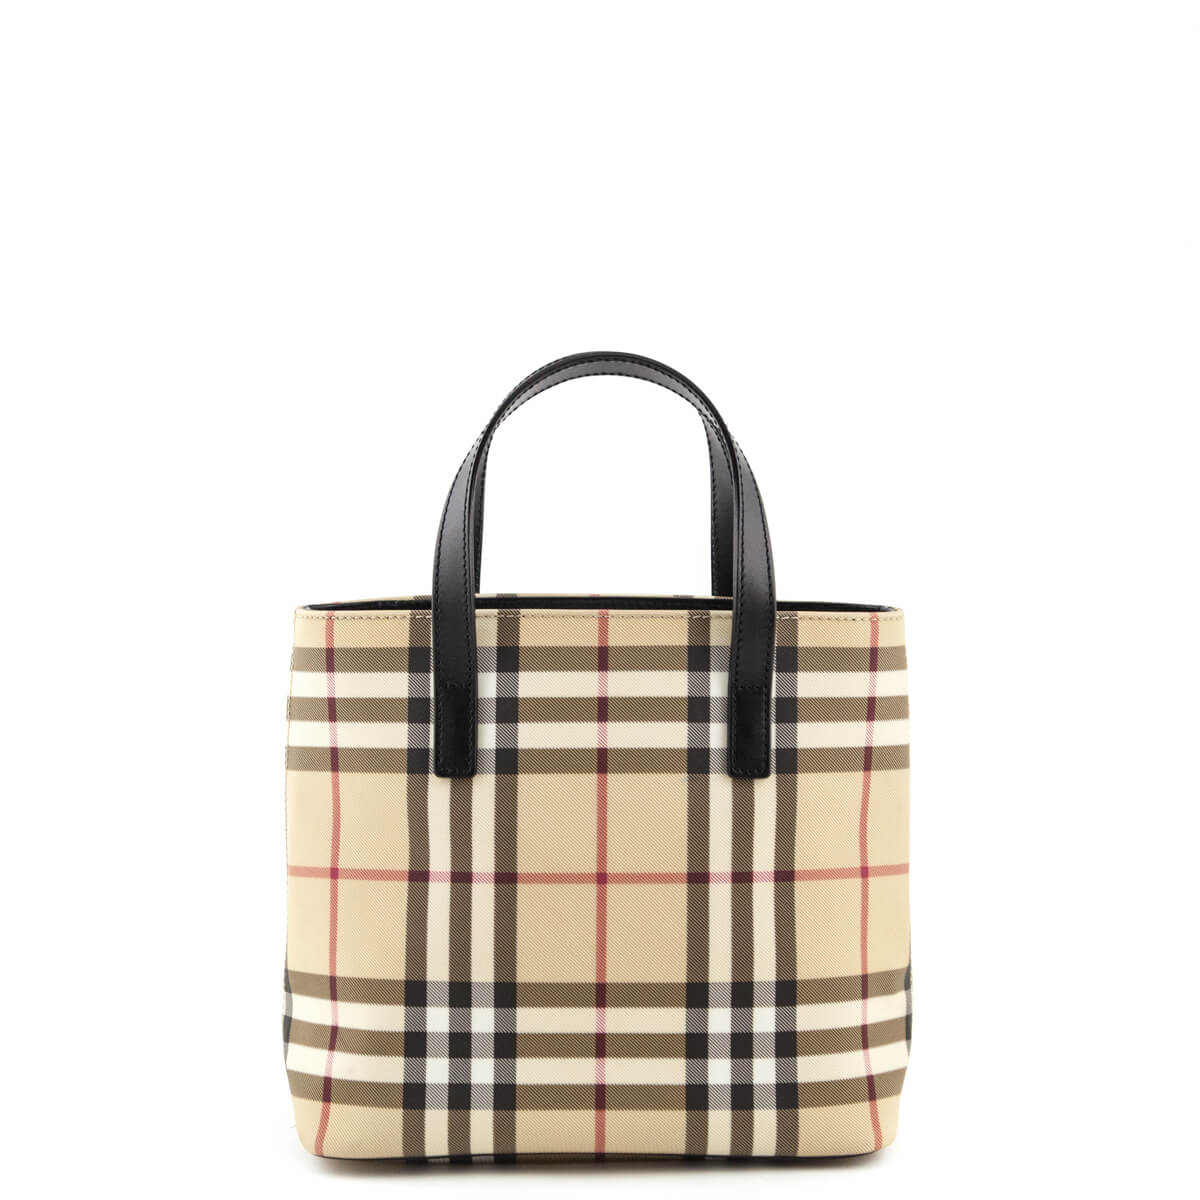 8151abbd07e Burberry Nova Check Coated Canvas Small Tote Bag - LOVE that BAG - Preowned  Authentic Designer ...